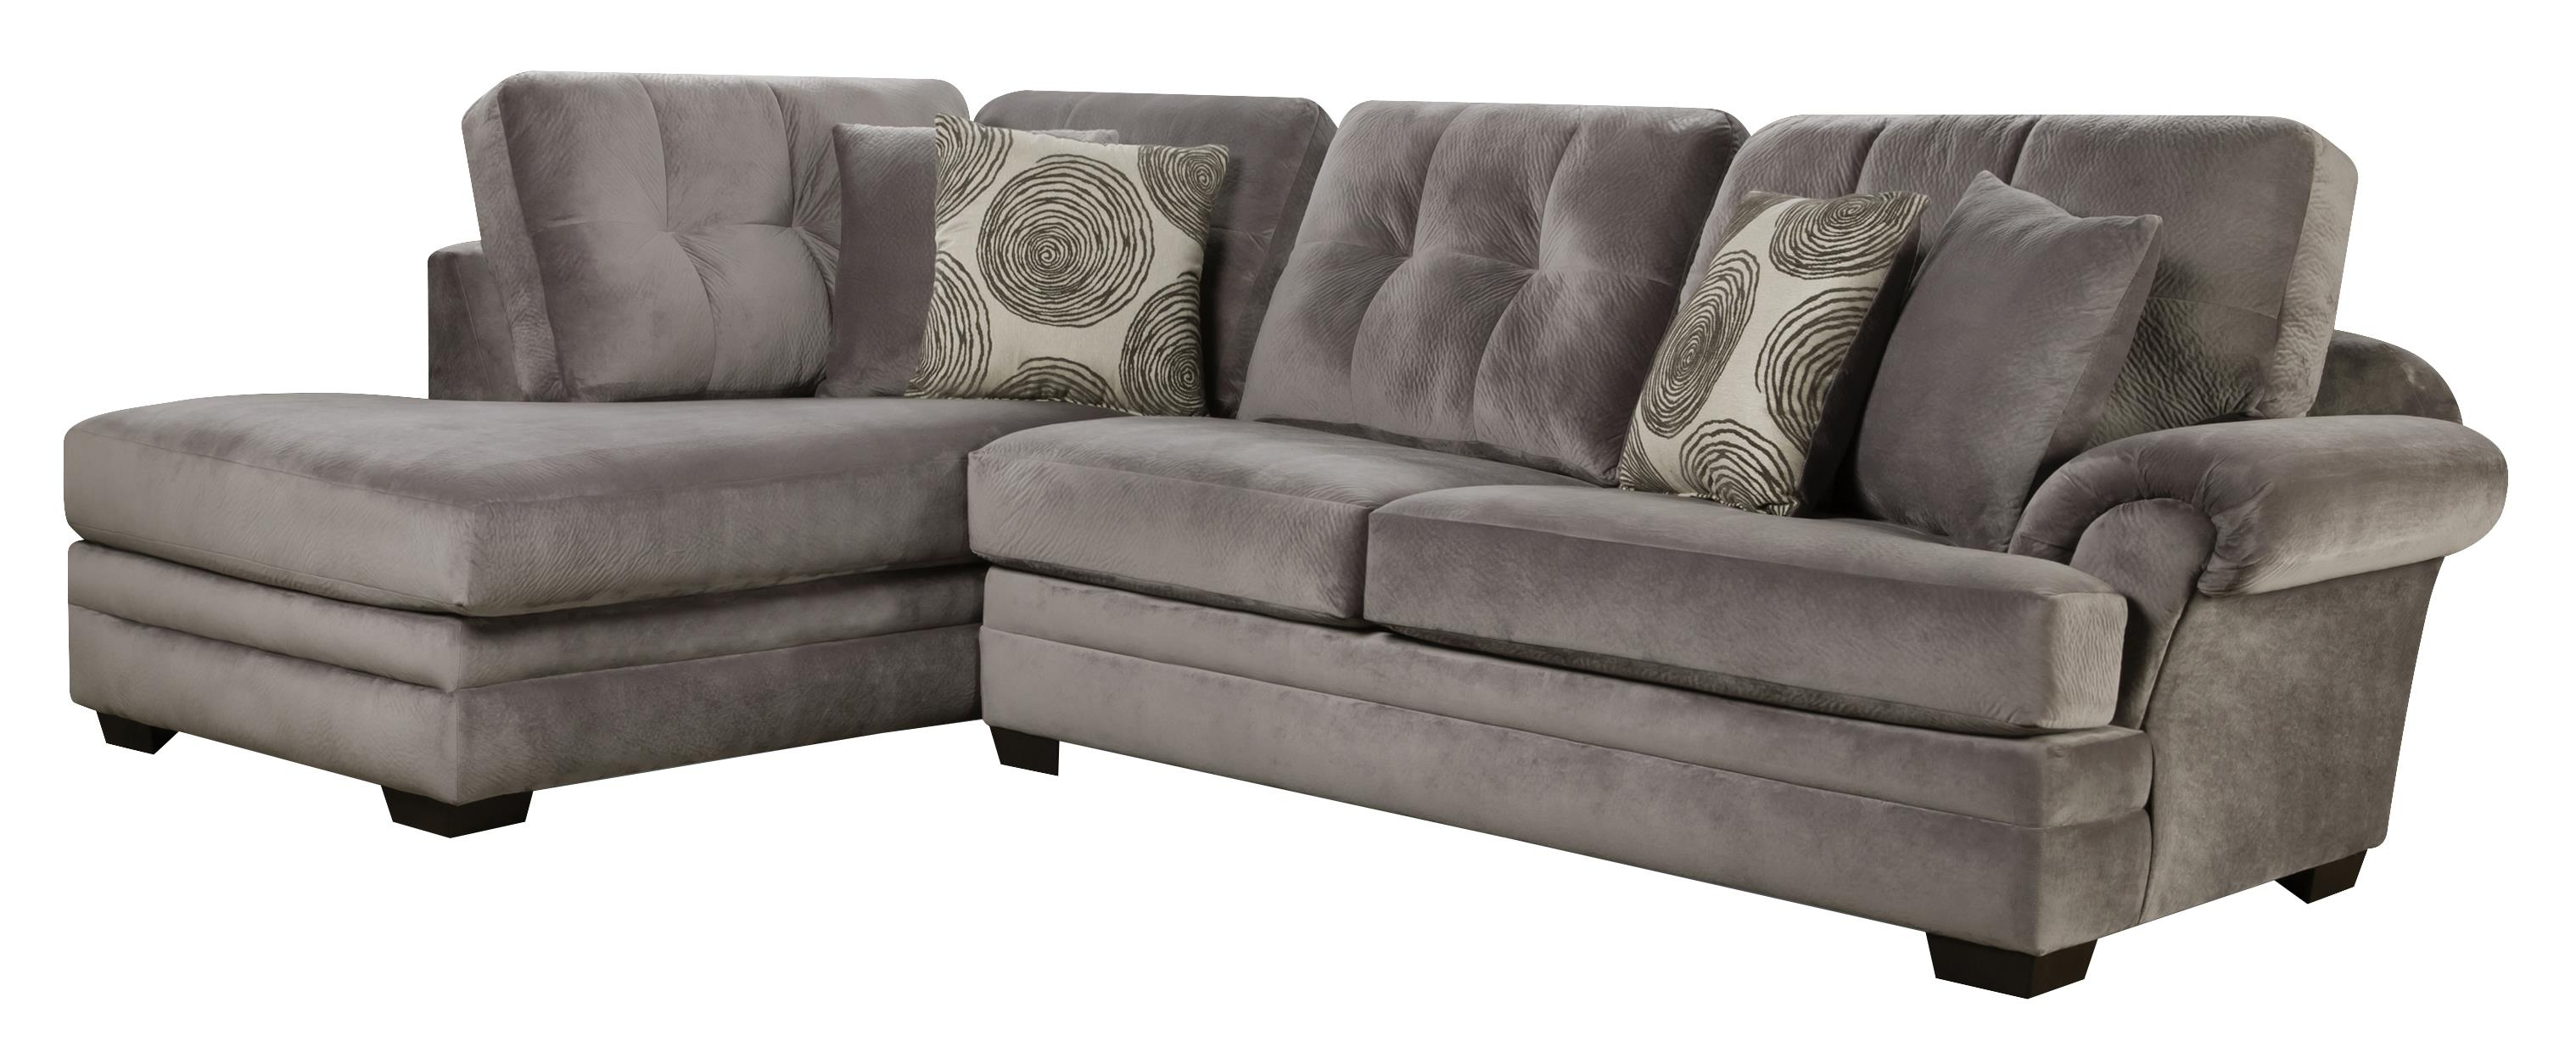 Sectional Sofa With Chaise On Left Side Corinthian Wolf And In Corinthian Sectional Sofas (Image 12 of 15)